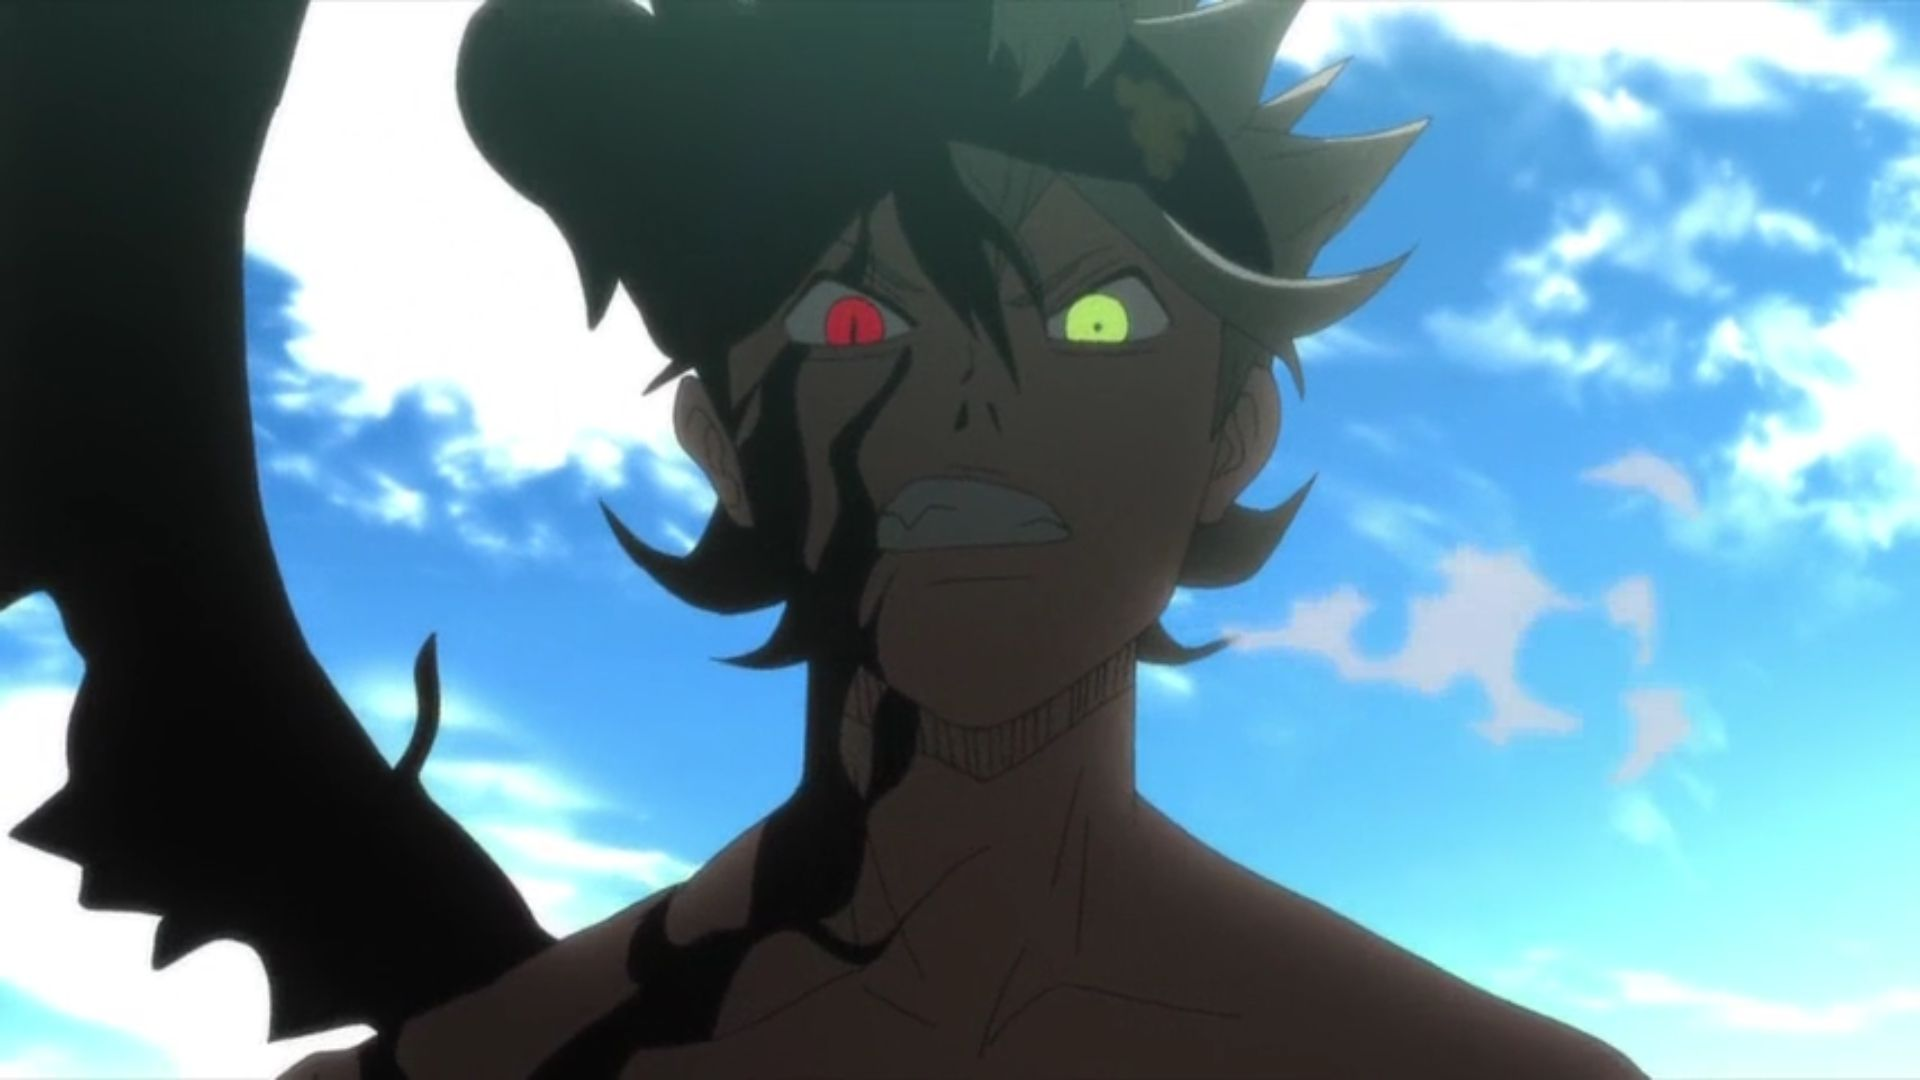 Black Clover Asta demon form eyes